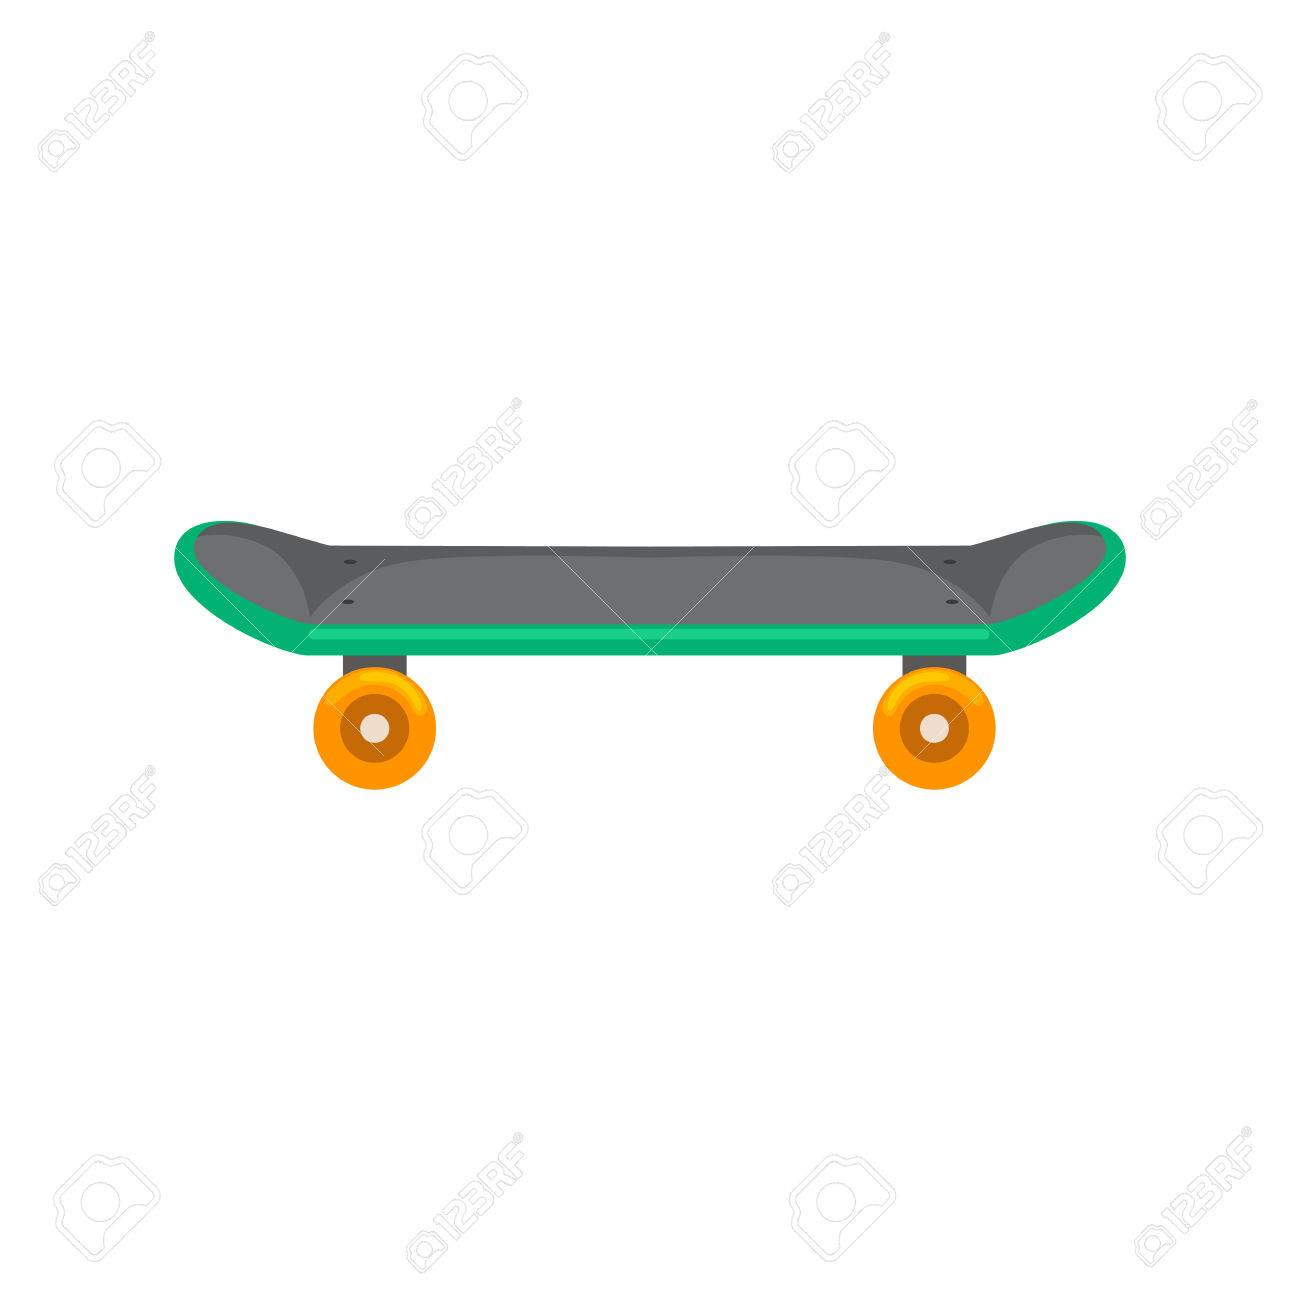 isolated skateboard with wheel for active lifestyle, extreme sport for youth activity, balance street transport vector illustration. - 62617971